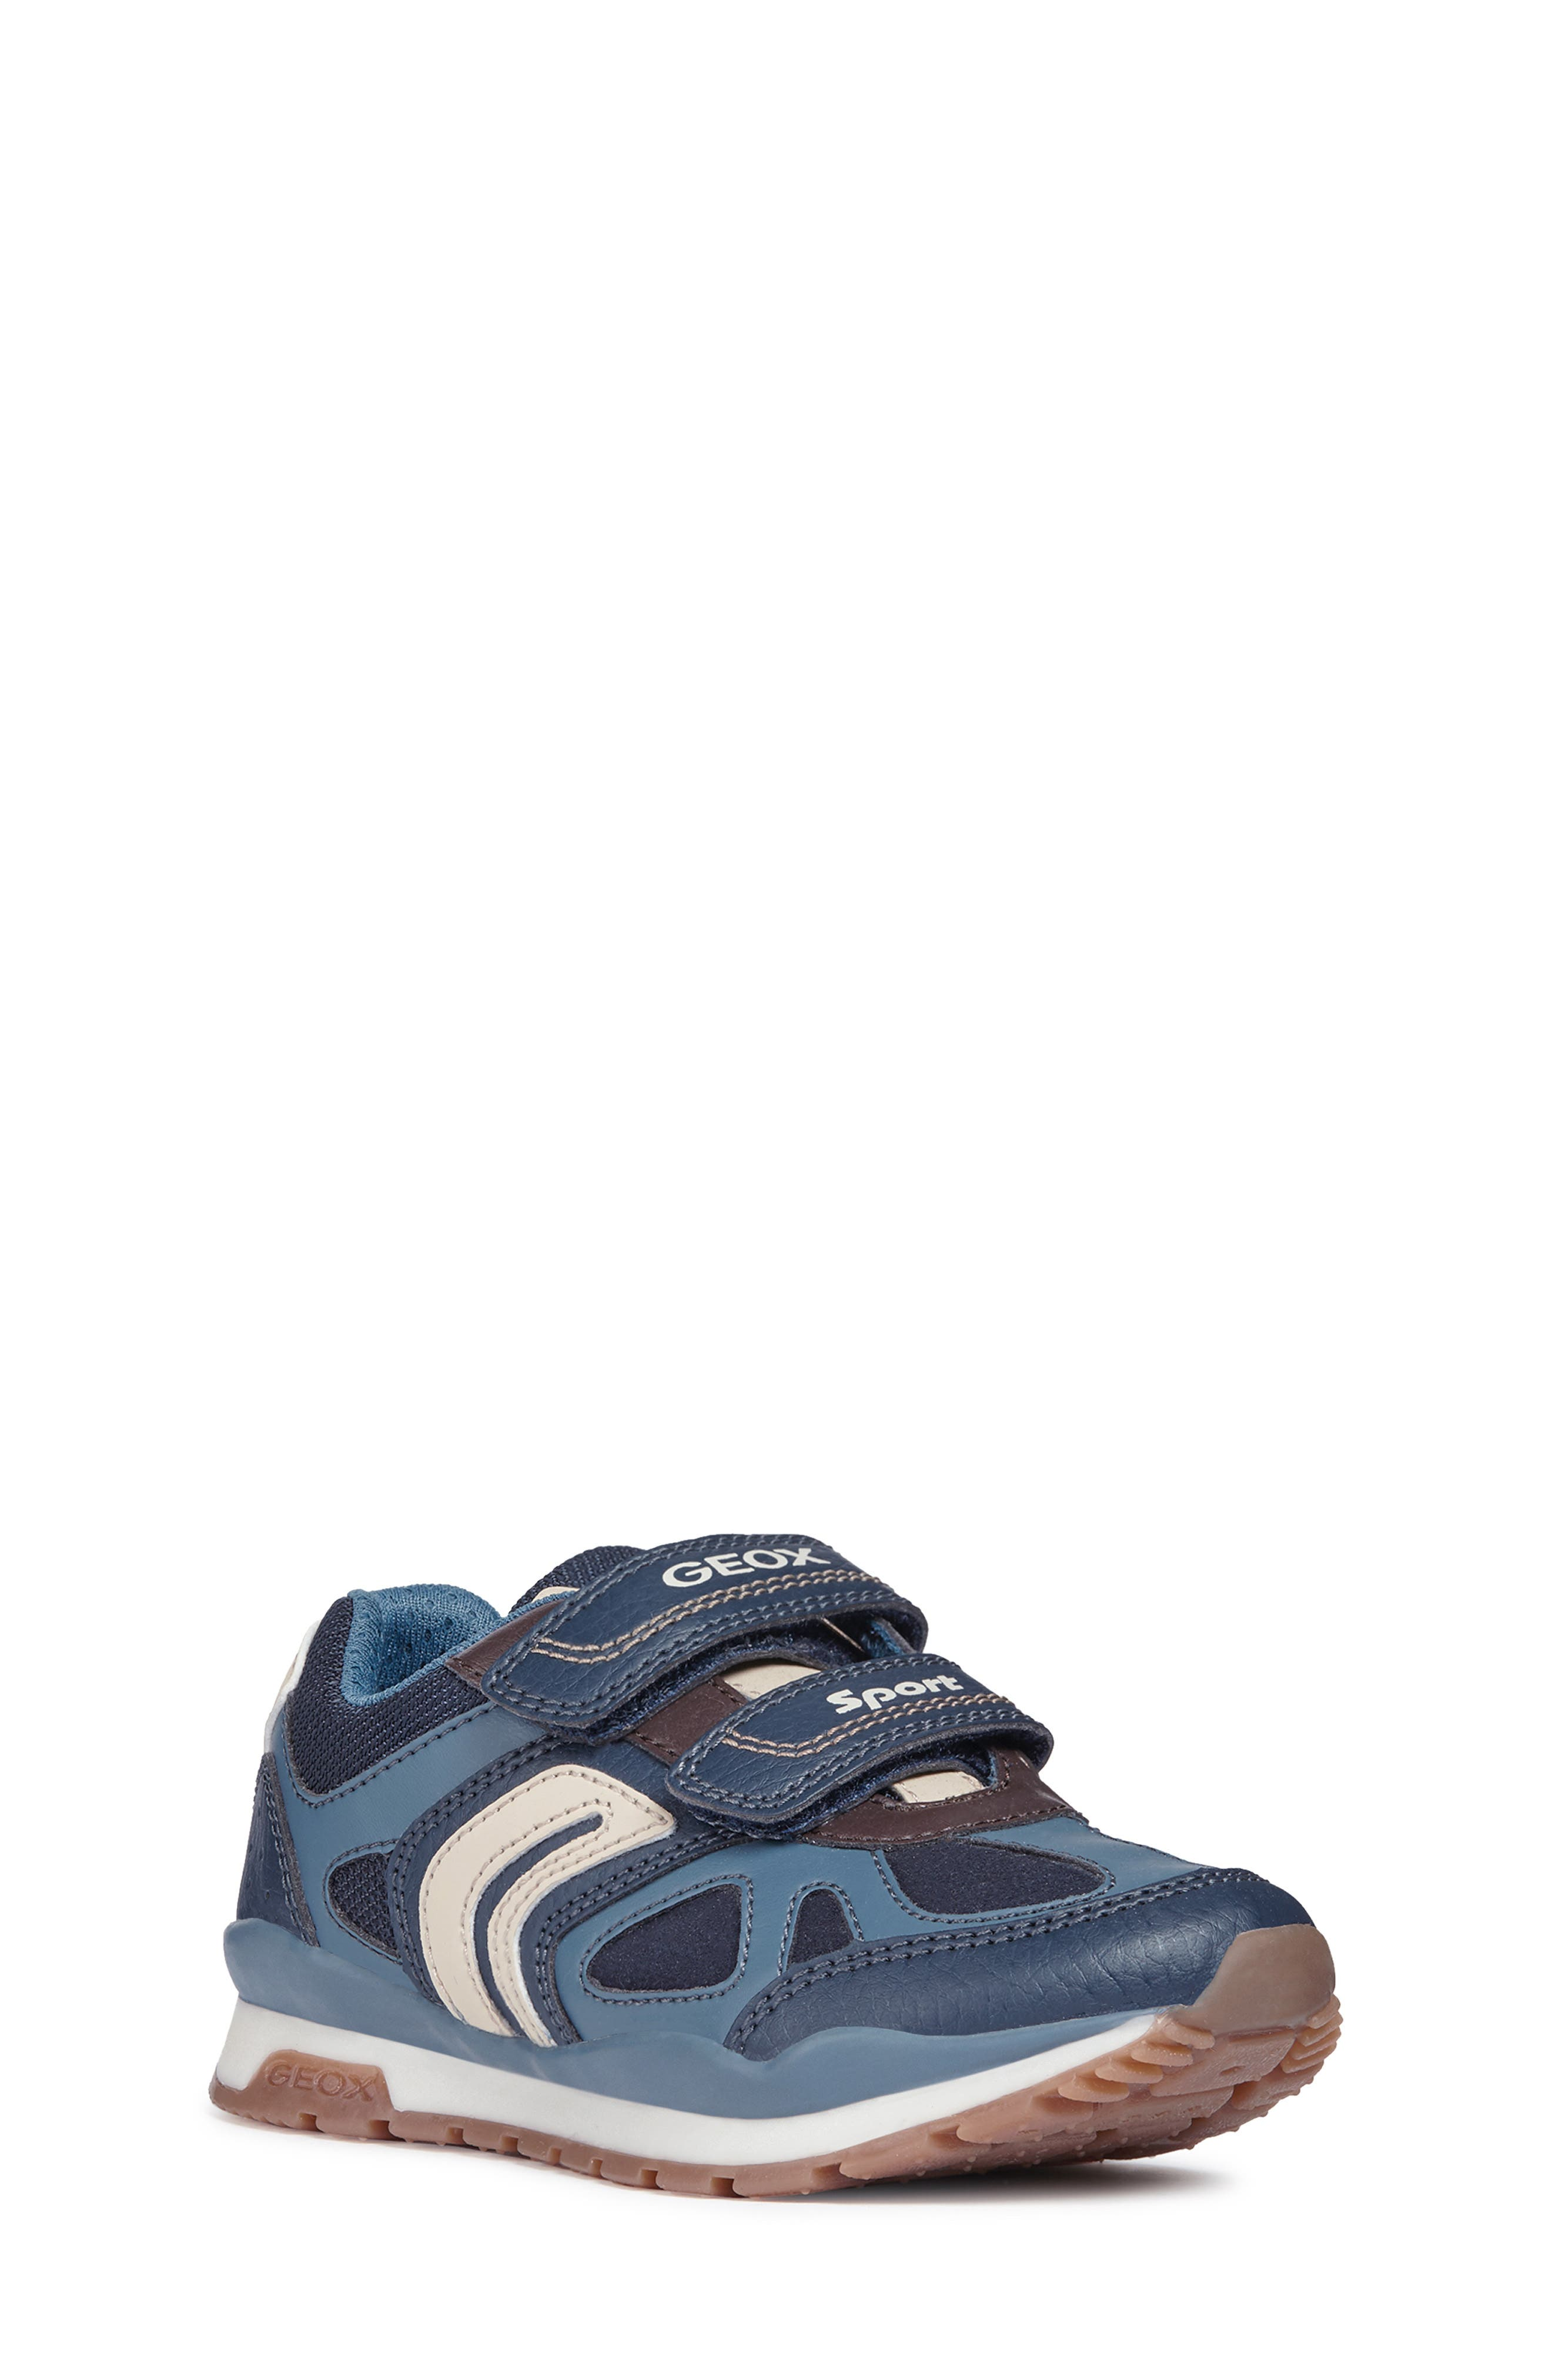 Pavel Sneaker,                             Main thumbnail 1, color,                             Navy/Avio